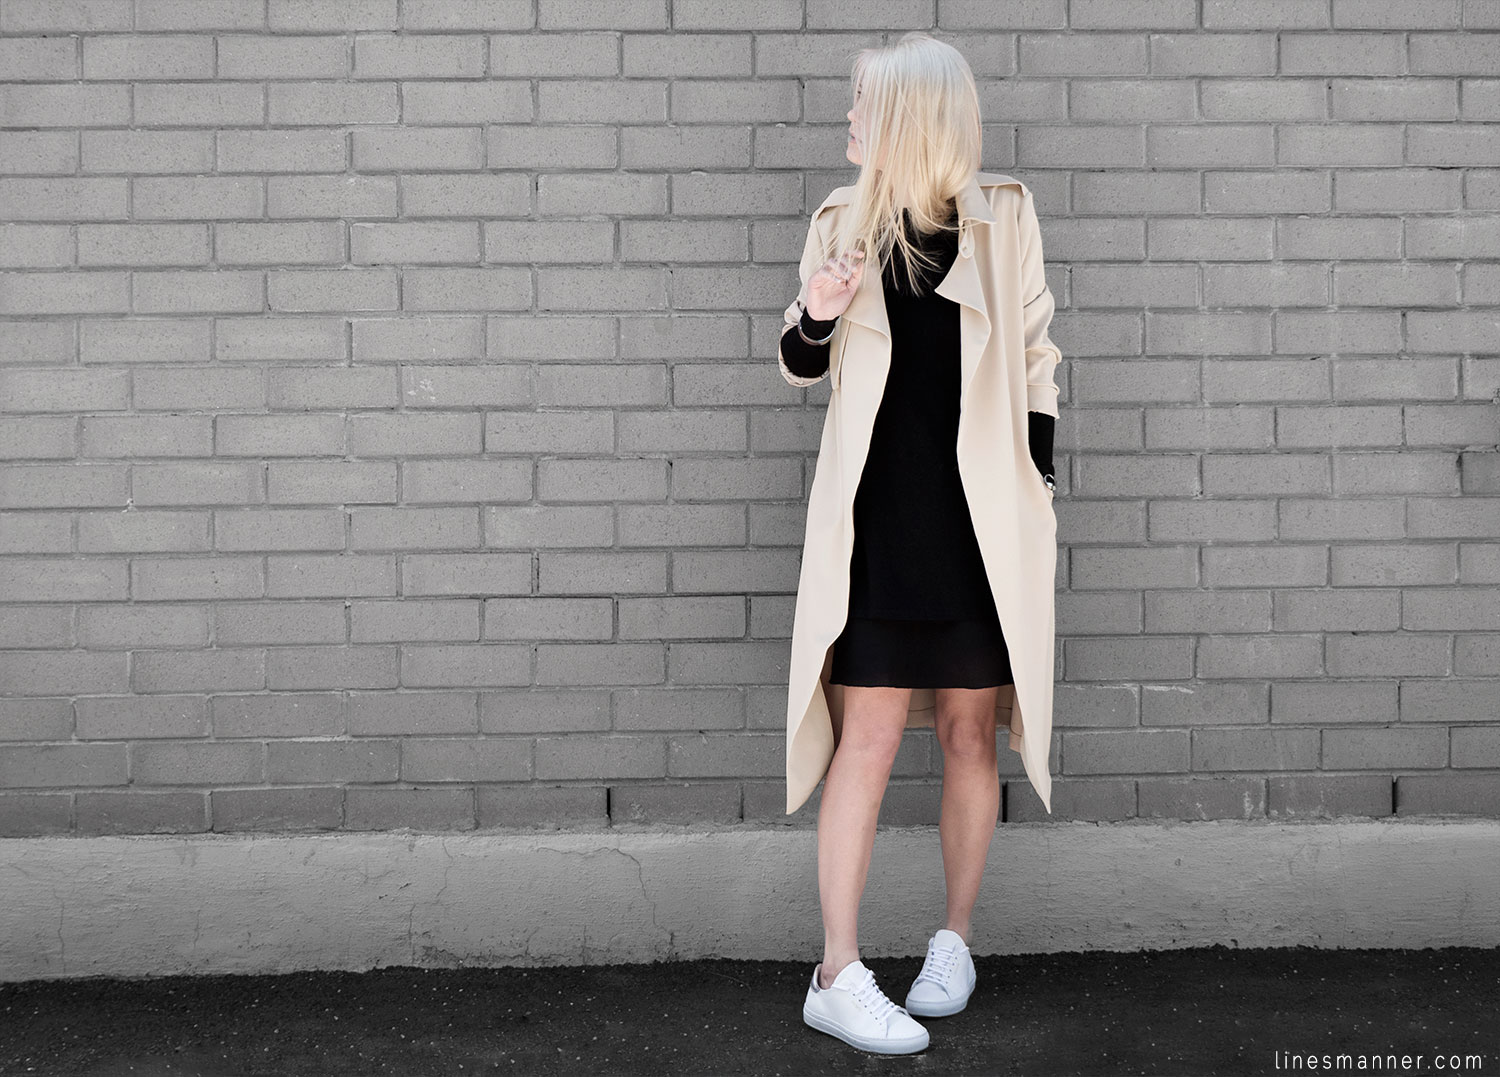 Lines-Manner-Trench-Minimal-Outfits-Fashion-Essentials-Classics-Timeless-Versatile-Details-Hues-Nonchalance-Elegance-Casual-Effortless-6